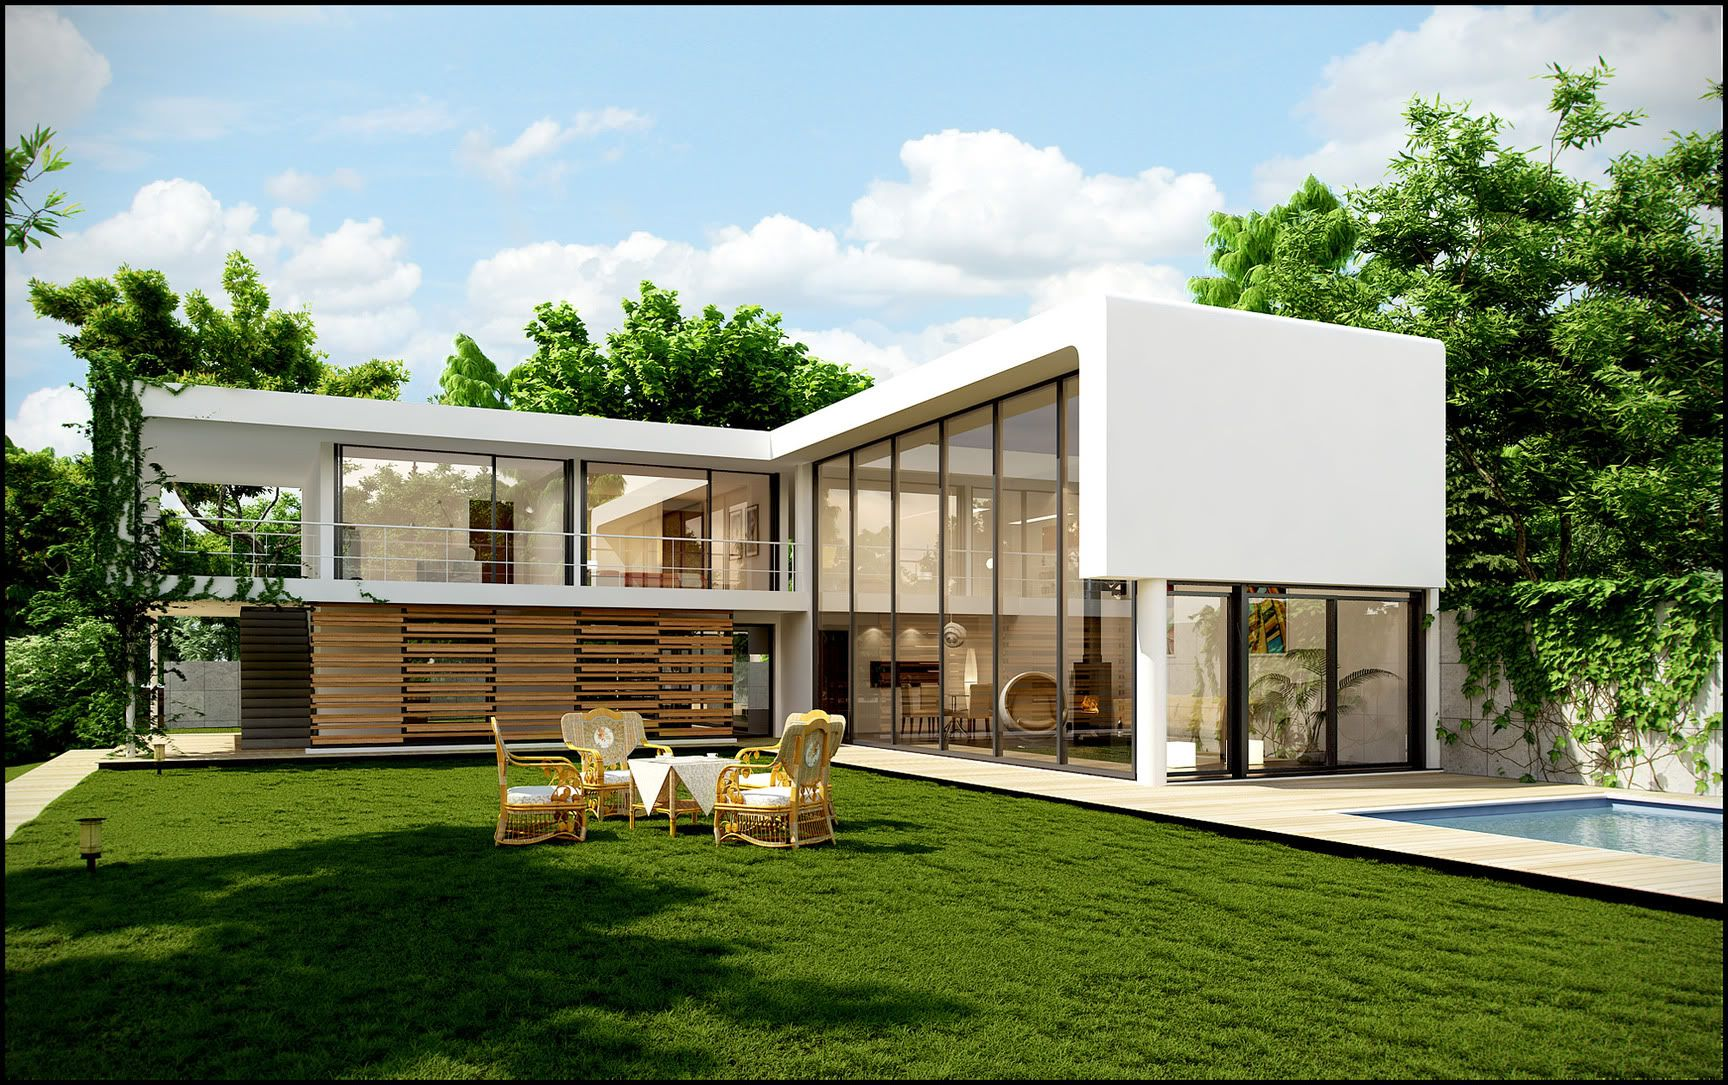 Architecture exterior impressive l shape small modern Small green home plans